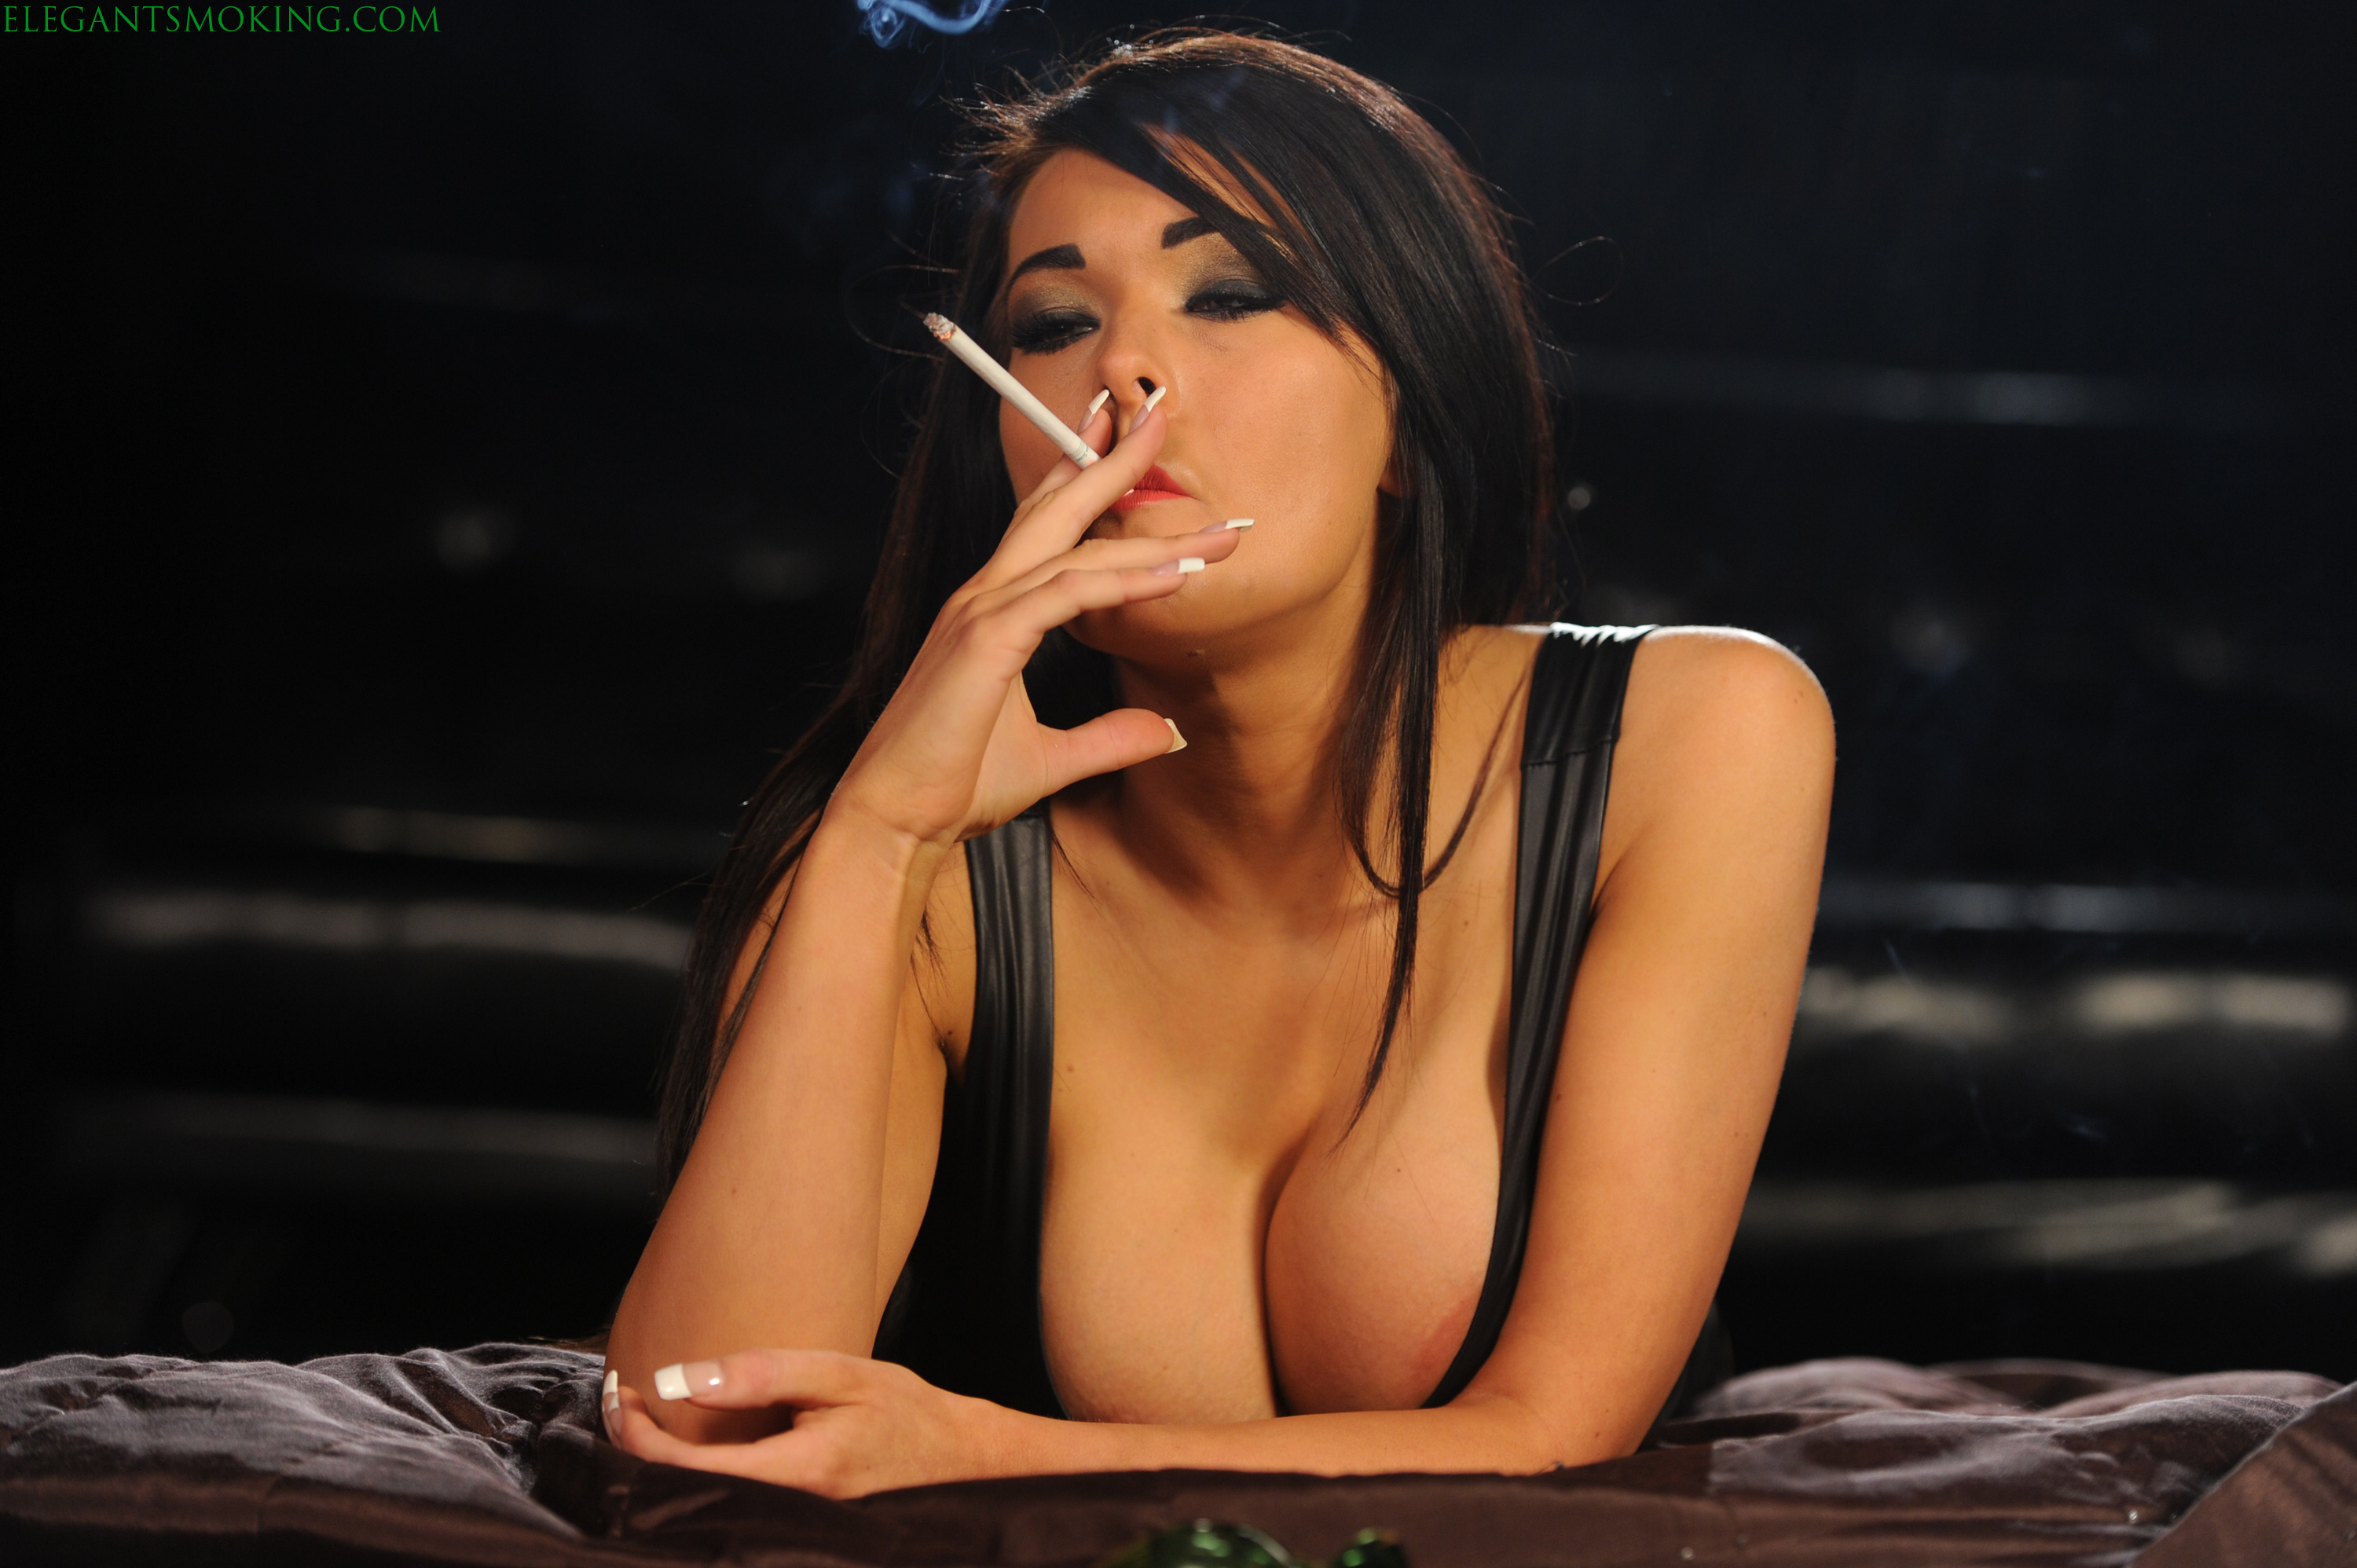 Hot brunette smoking 120s and playing 2